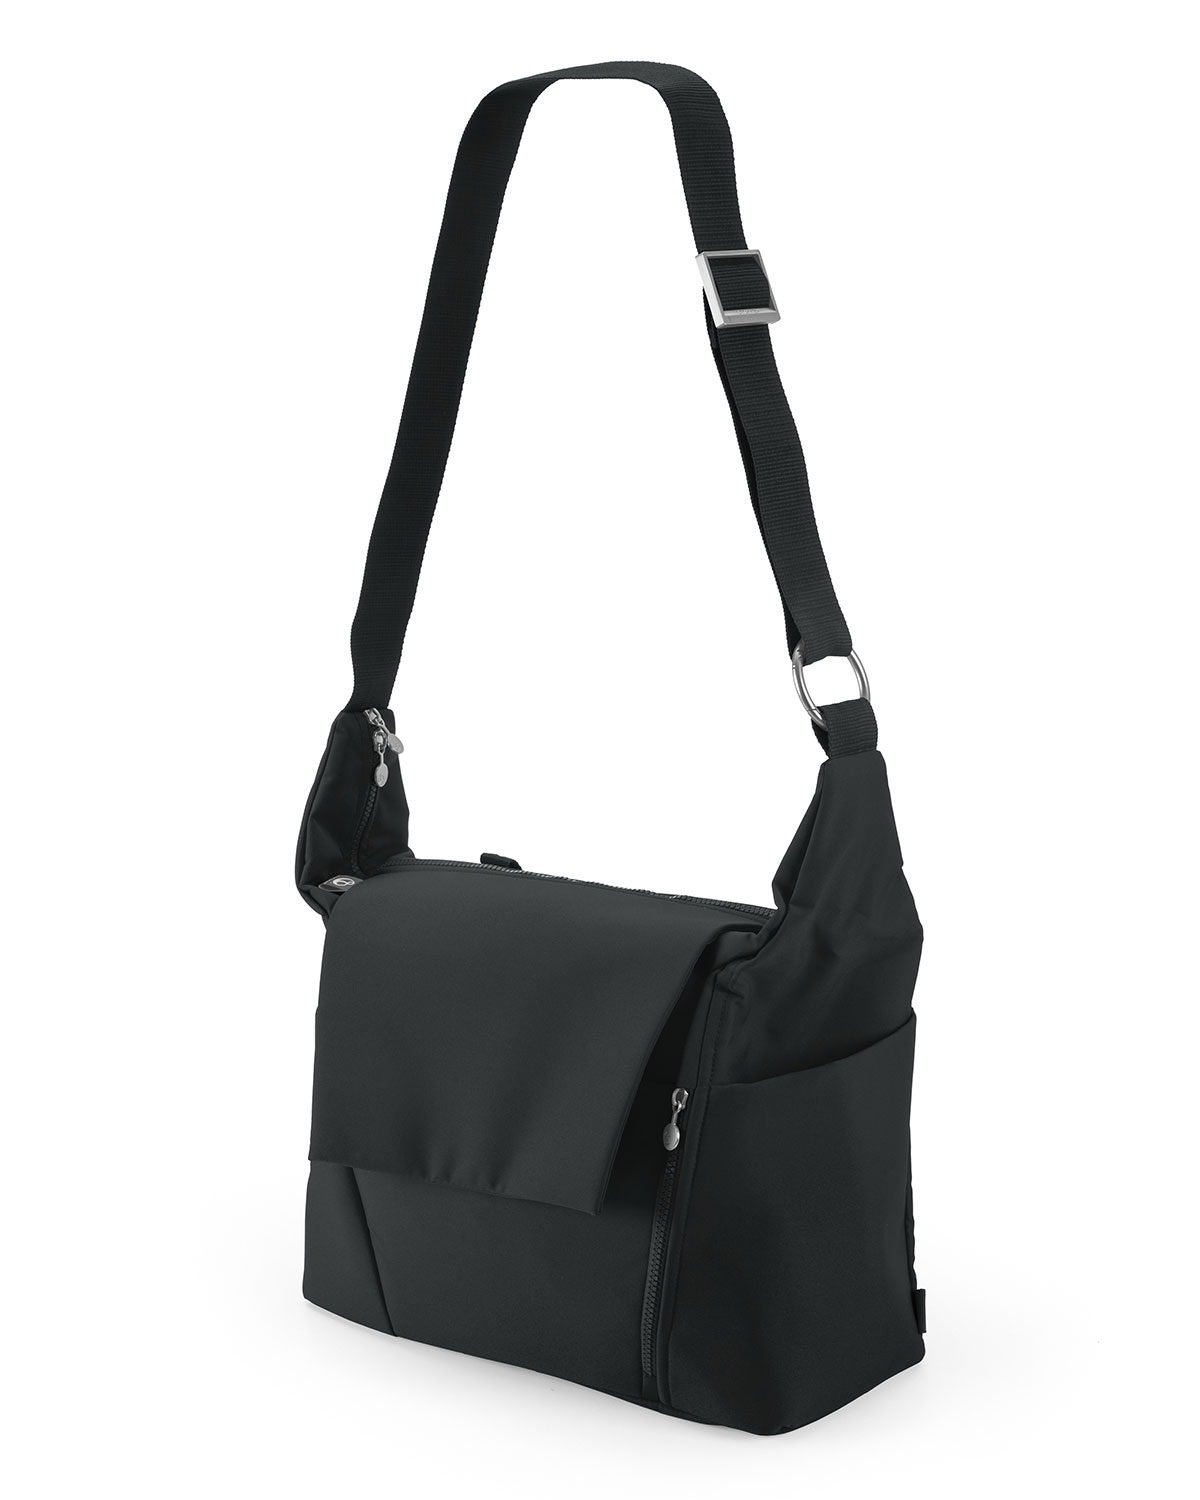 eef513db41cc Stokke Changing Bag